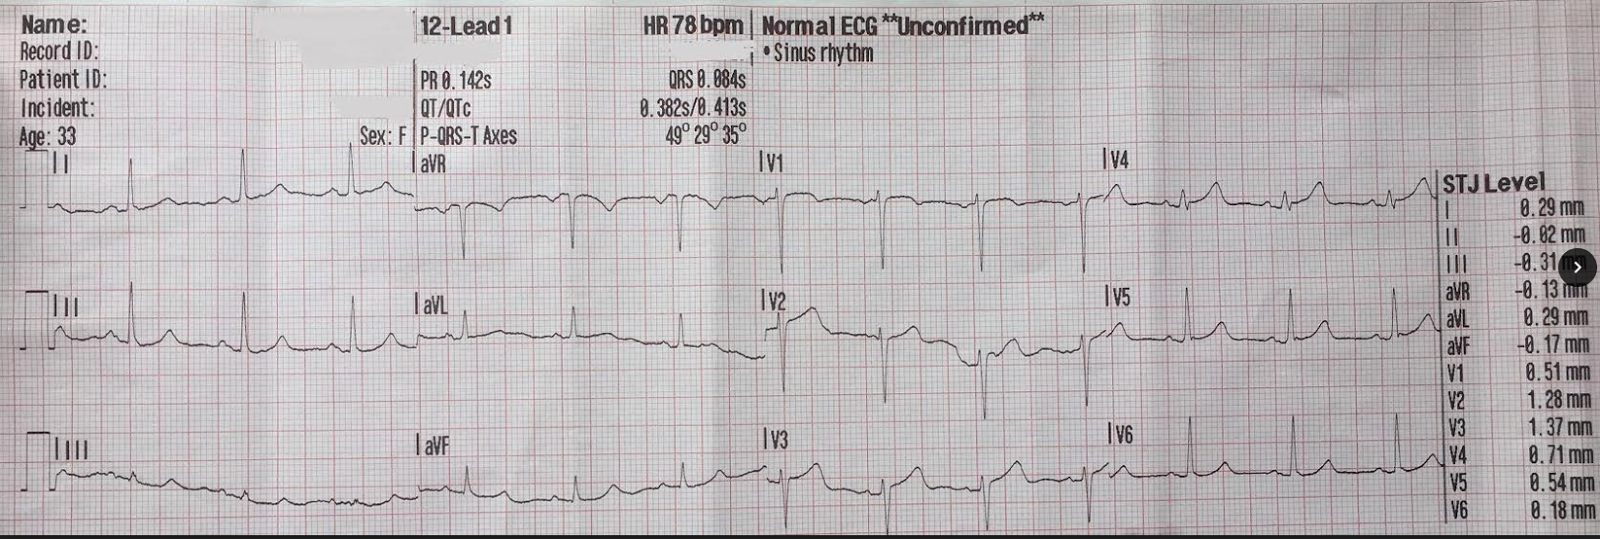 Normal Ecg Pattern Cool Design Ideas